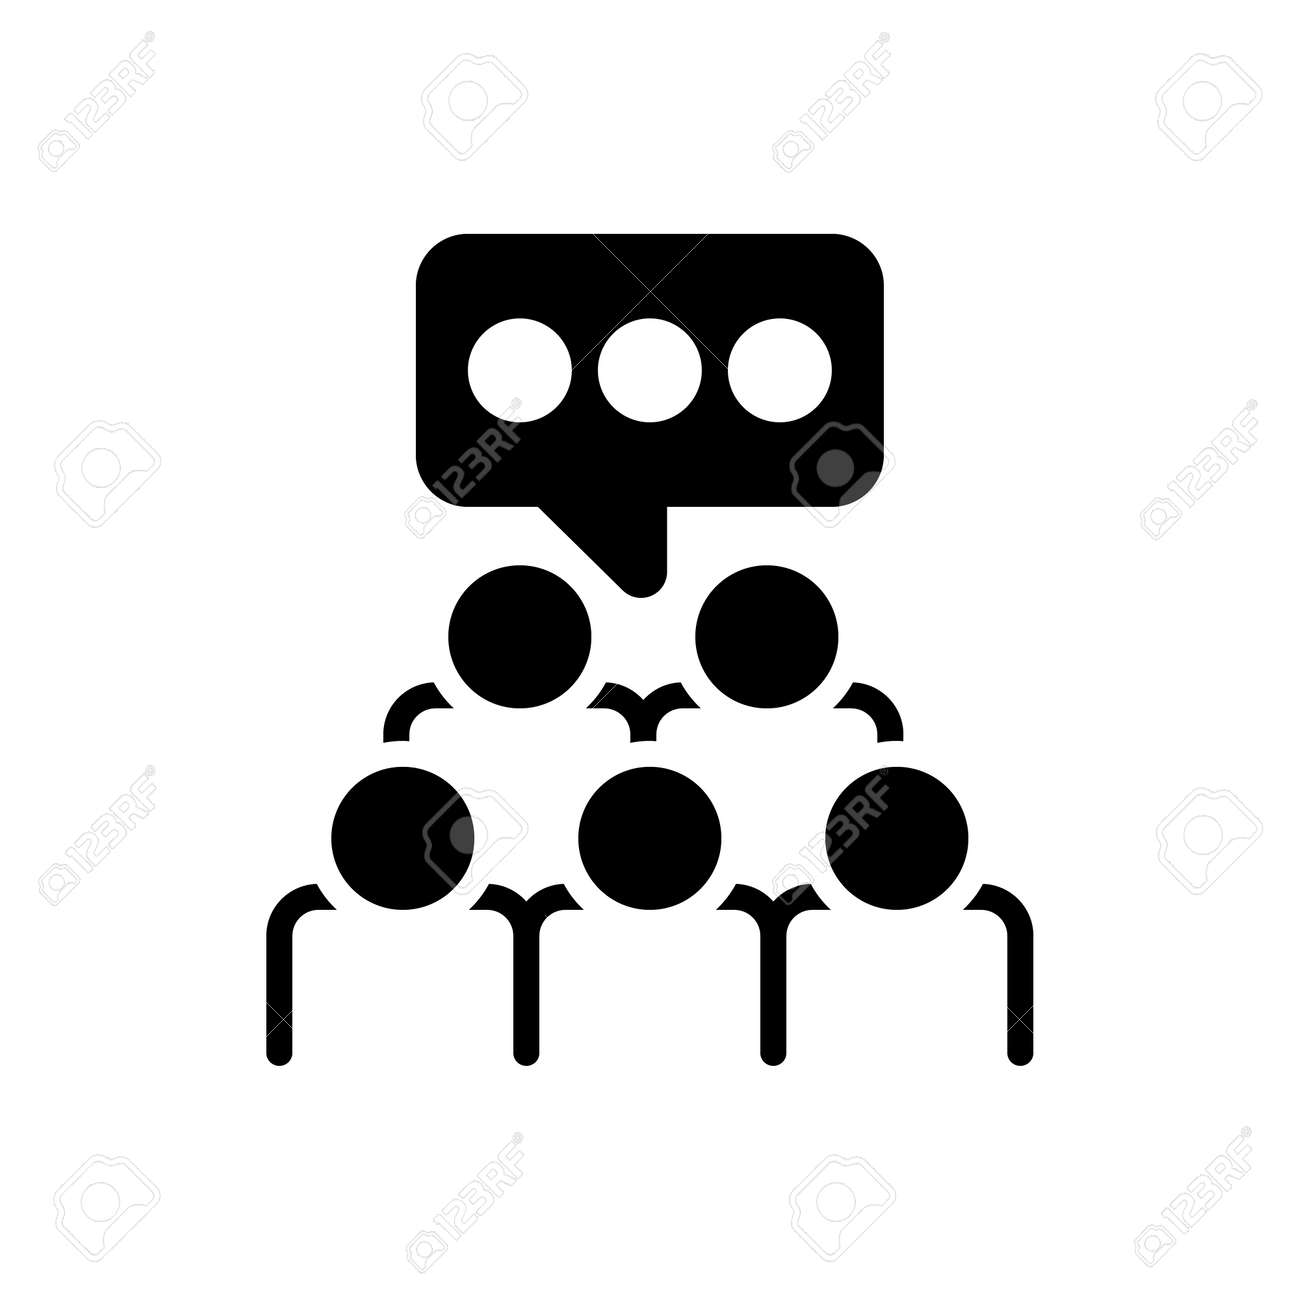 Icon for focus group,focus,group,survey - 172215108